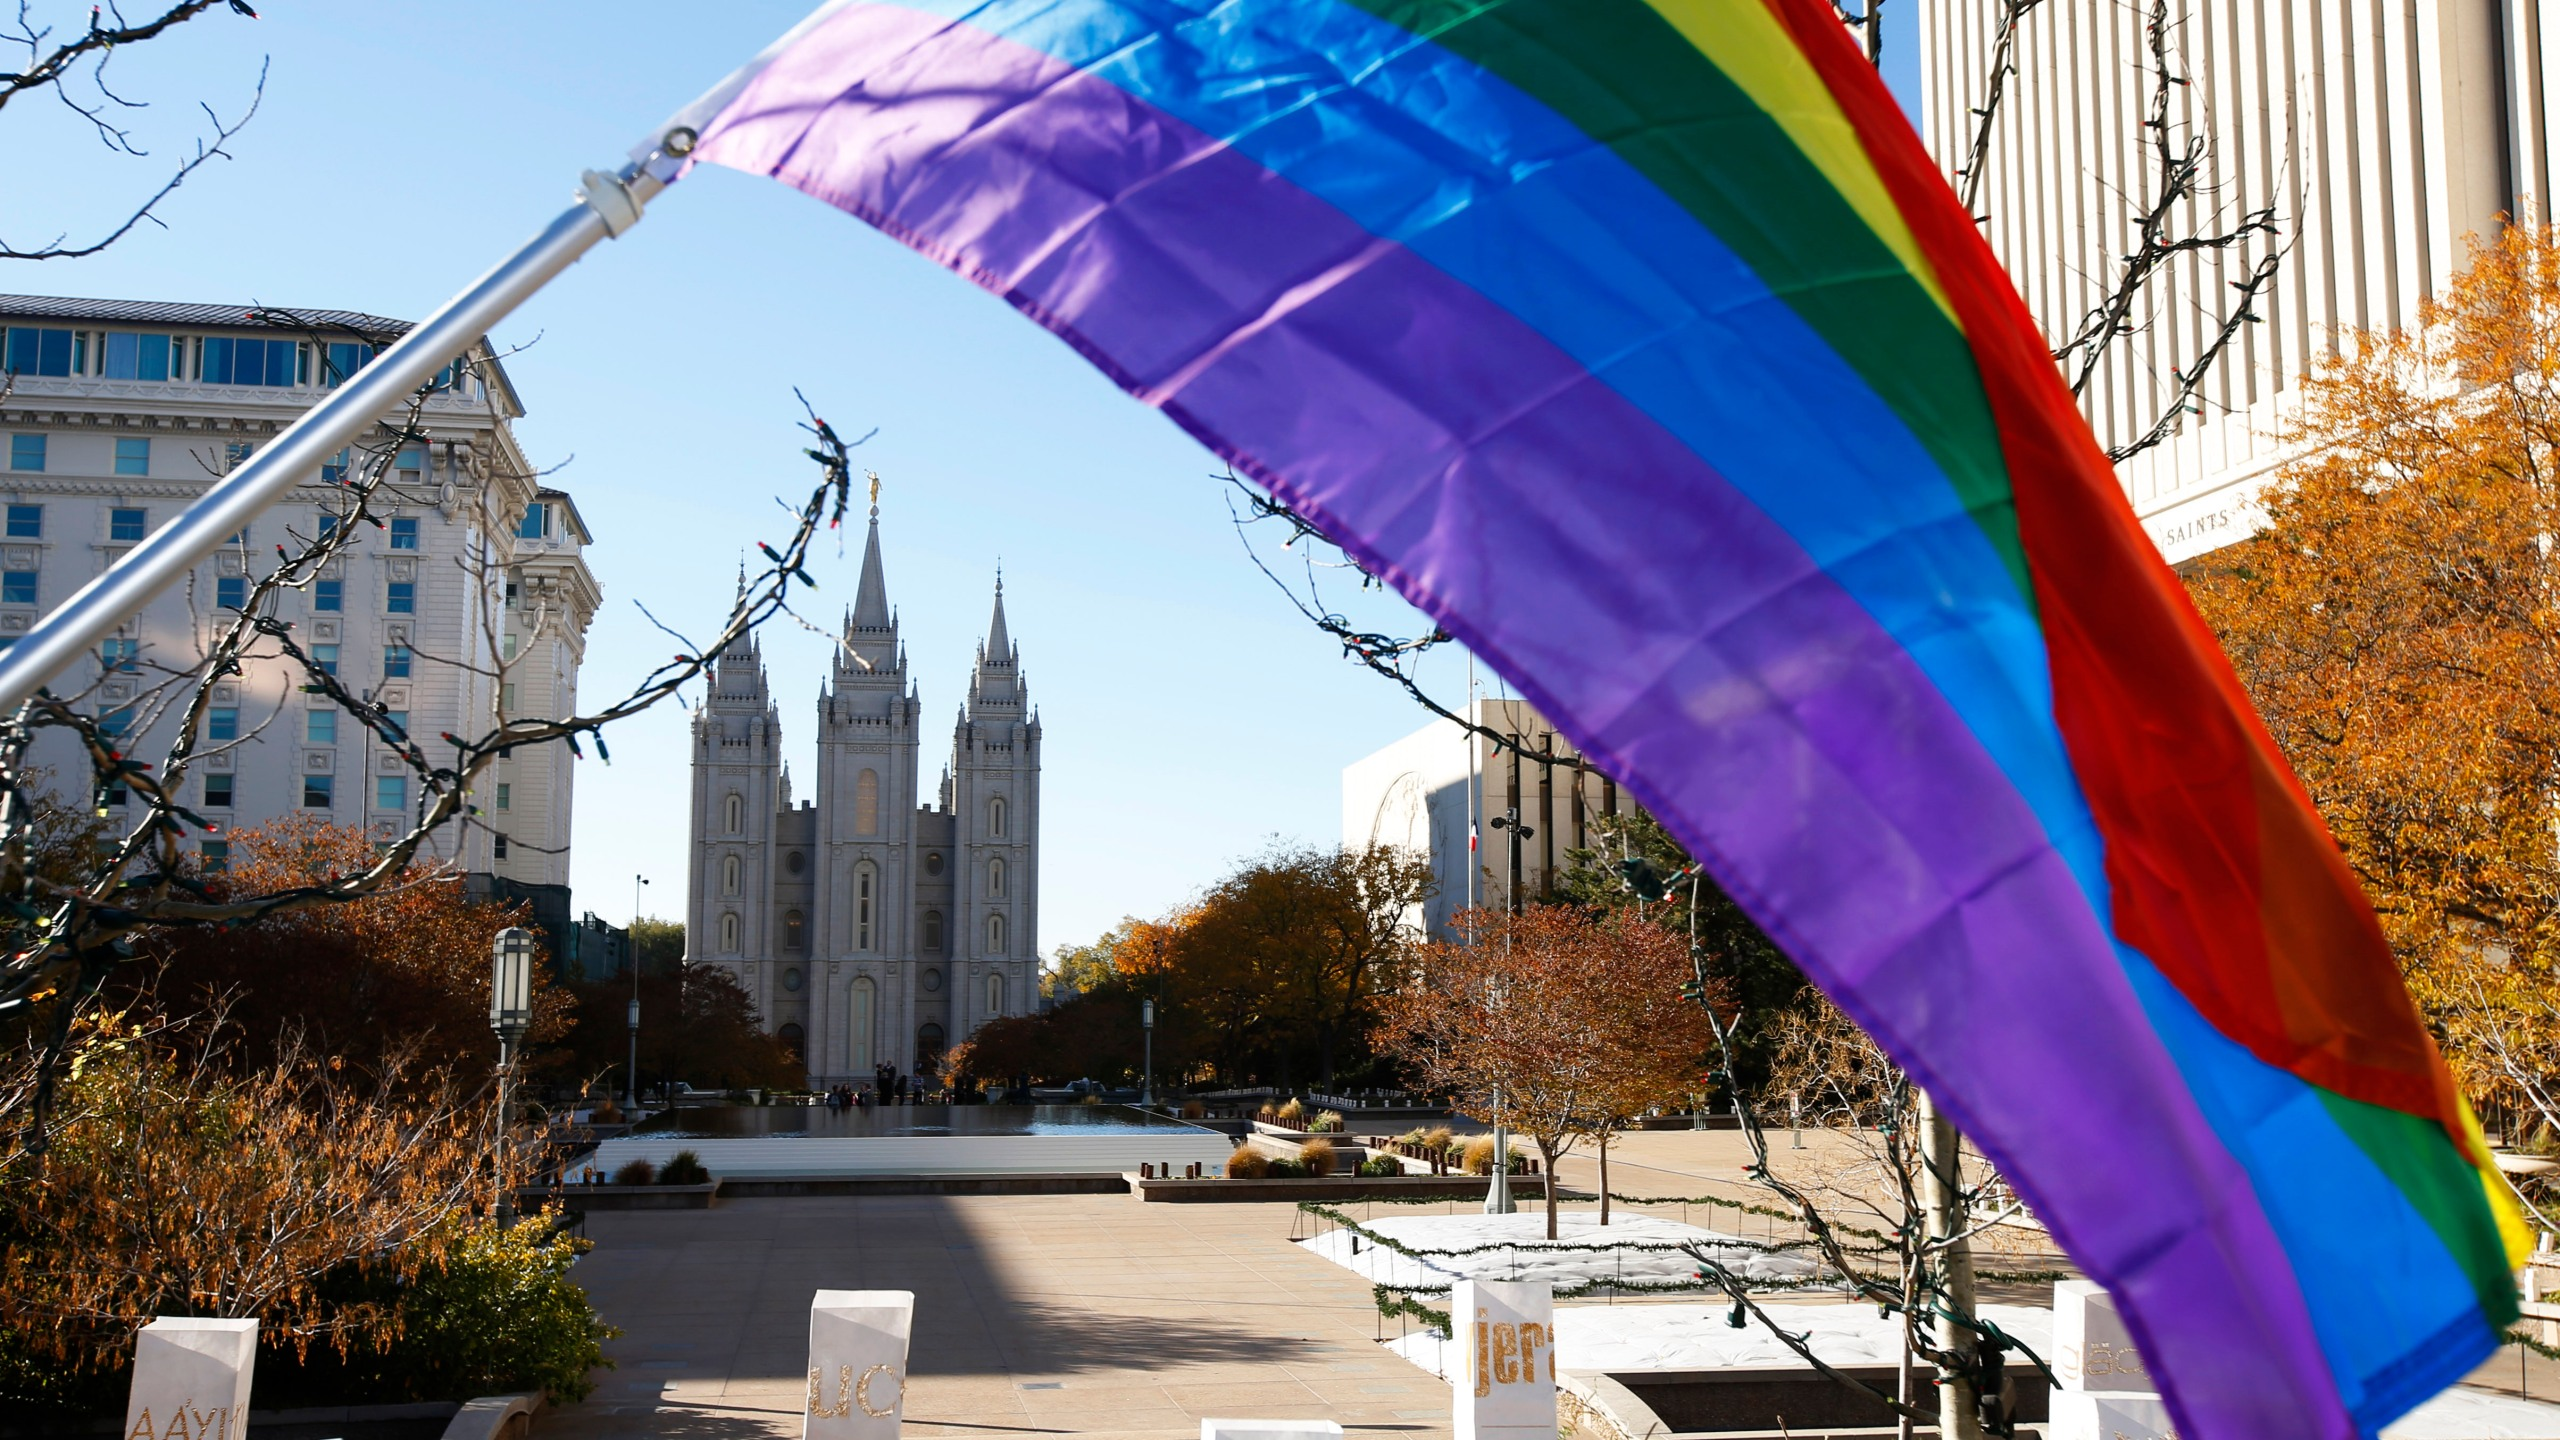 A pride flag flies in front of the Historic Mormon Temple as part of a protest where people resigned from the Church of Jesus Christ of Latter-Day Saints in response to a recent change in church policy towards married LGBTQ same-sex couples and their children on Nov. 14, 2015, in Salt Lake City, Utah. (Credit: George Frey/Getty Images)